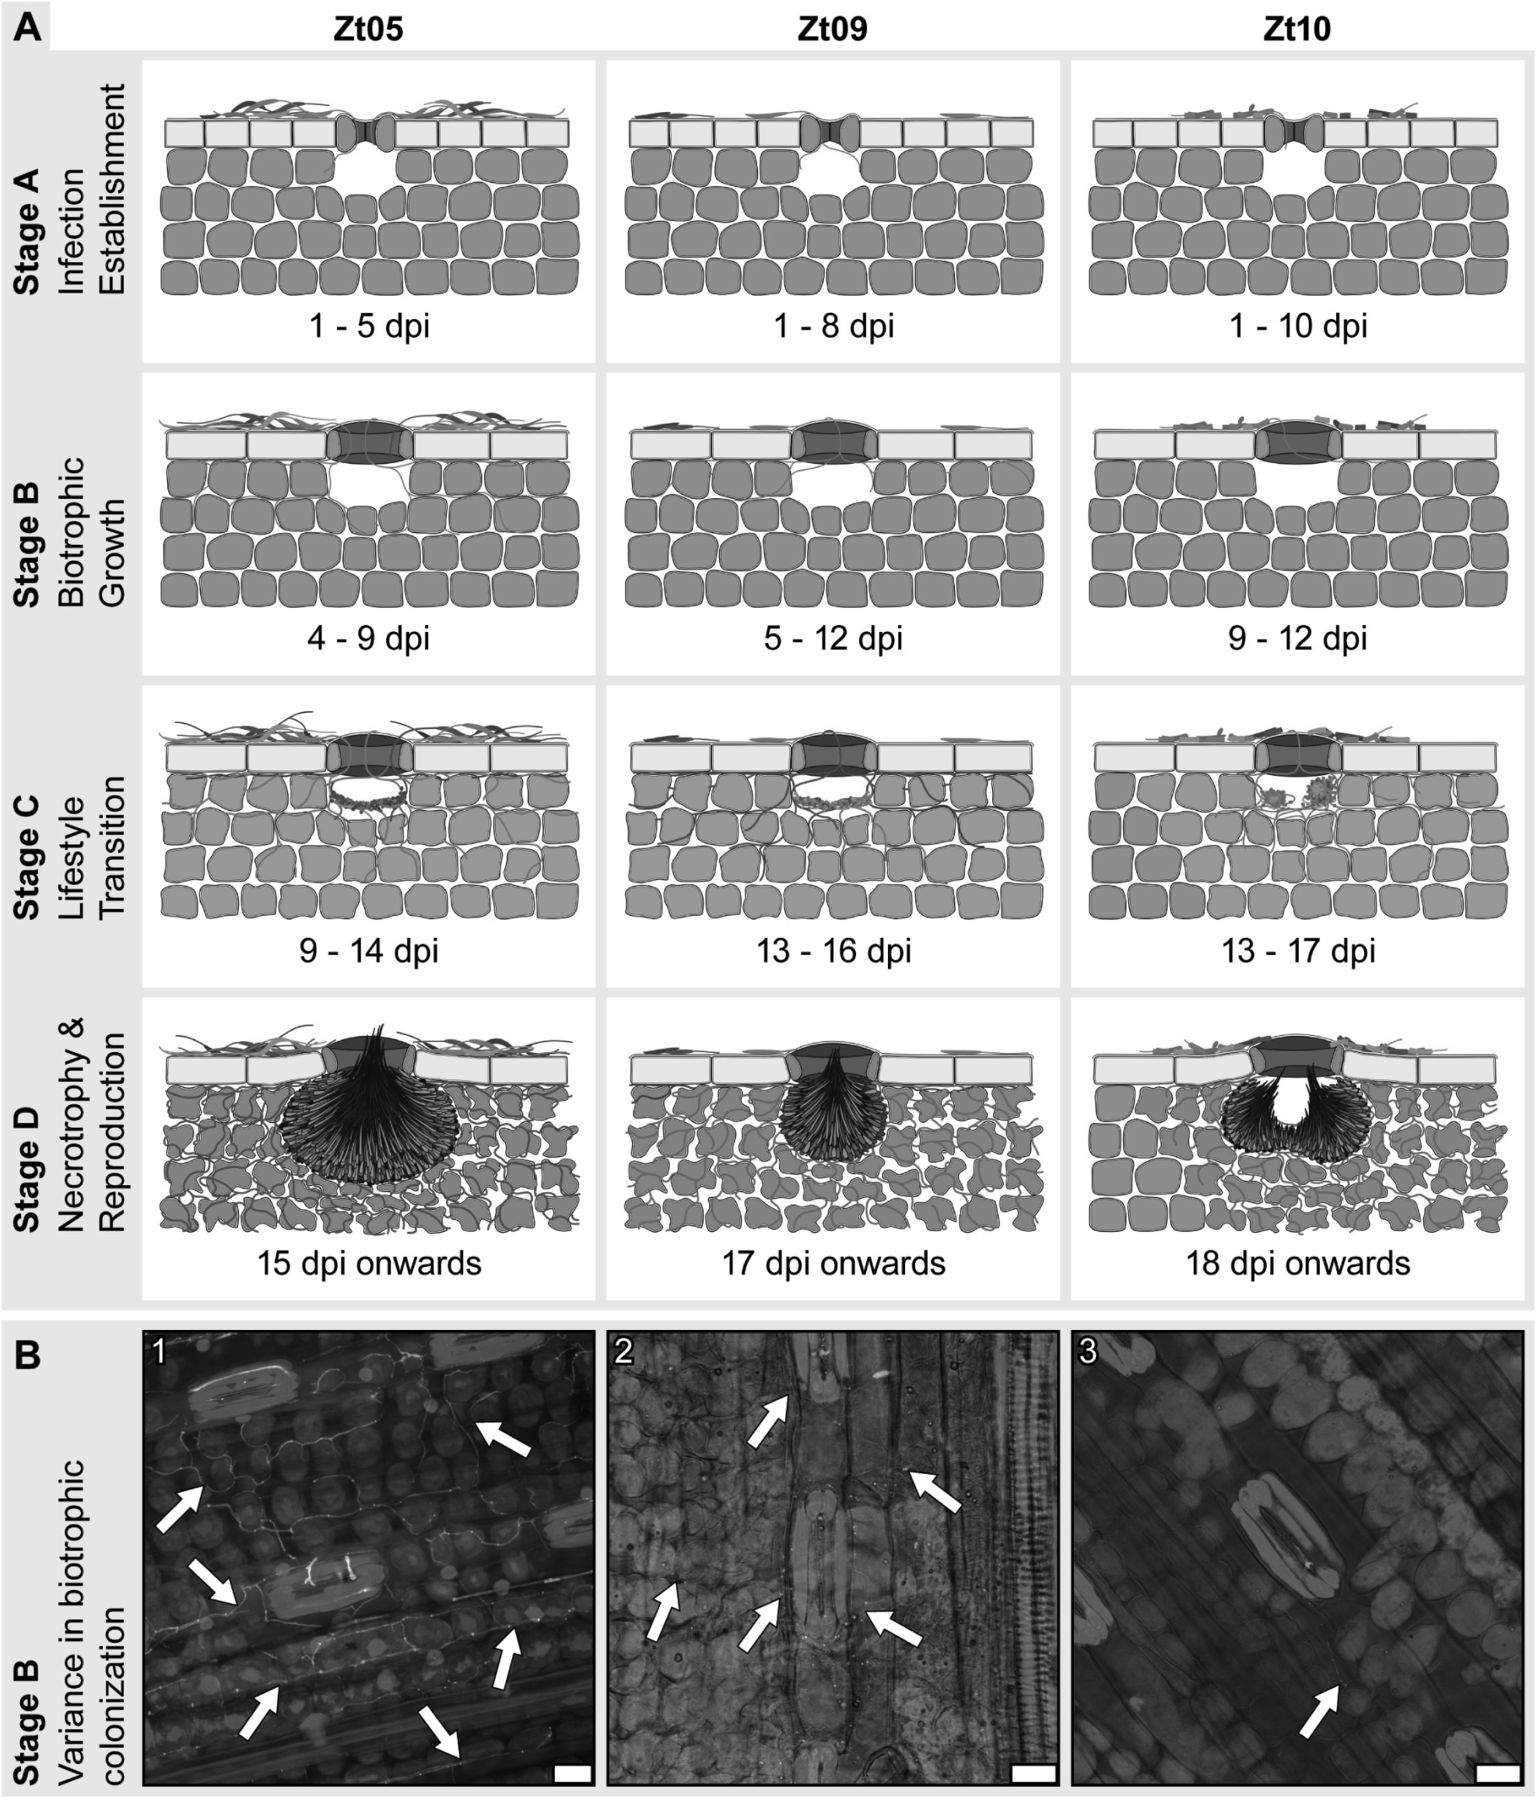 Extremely flexible infection programs in a fungal plant